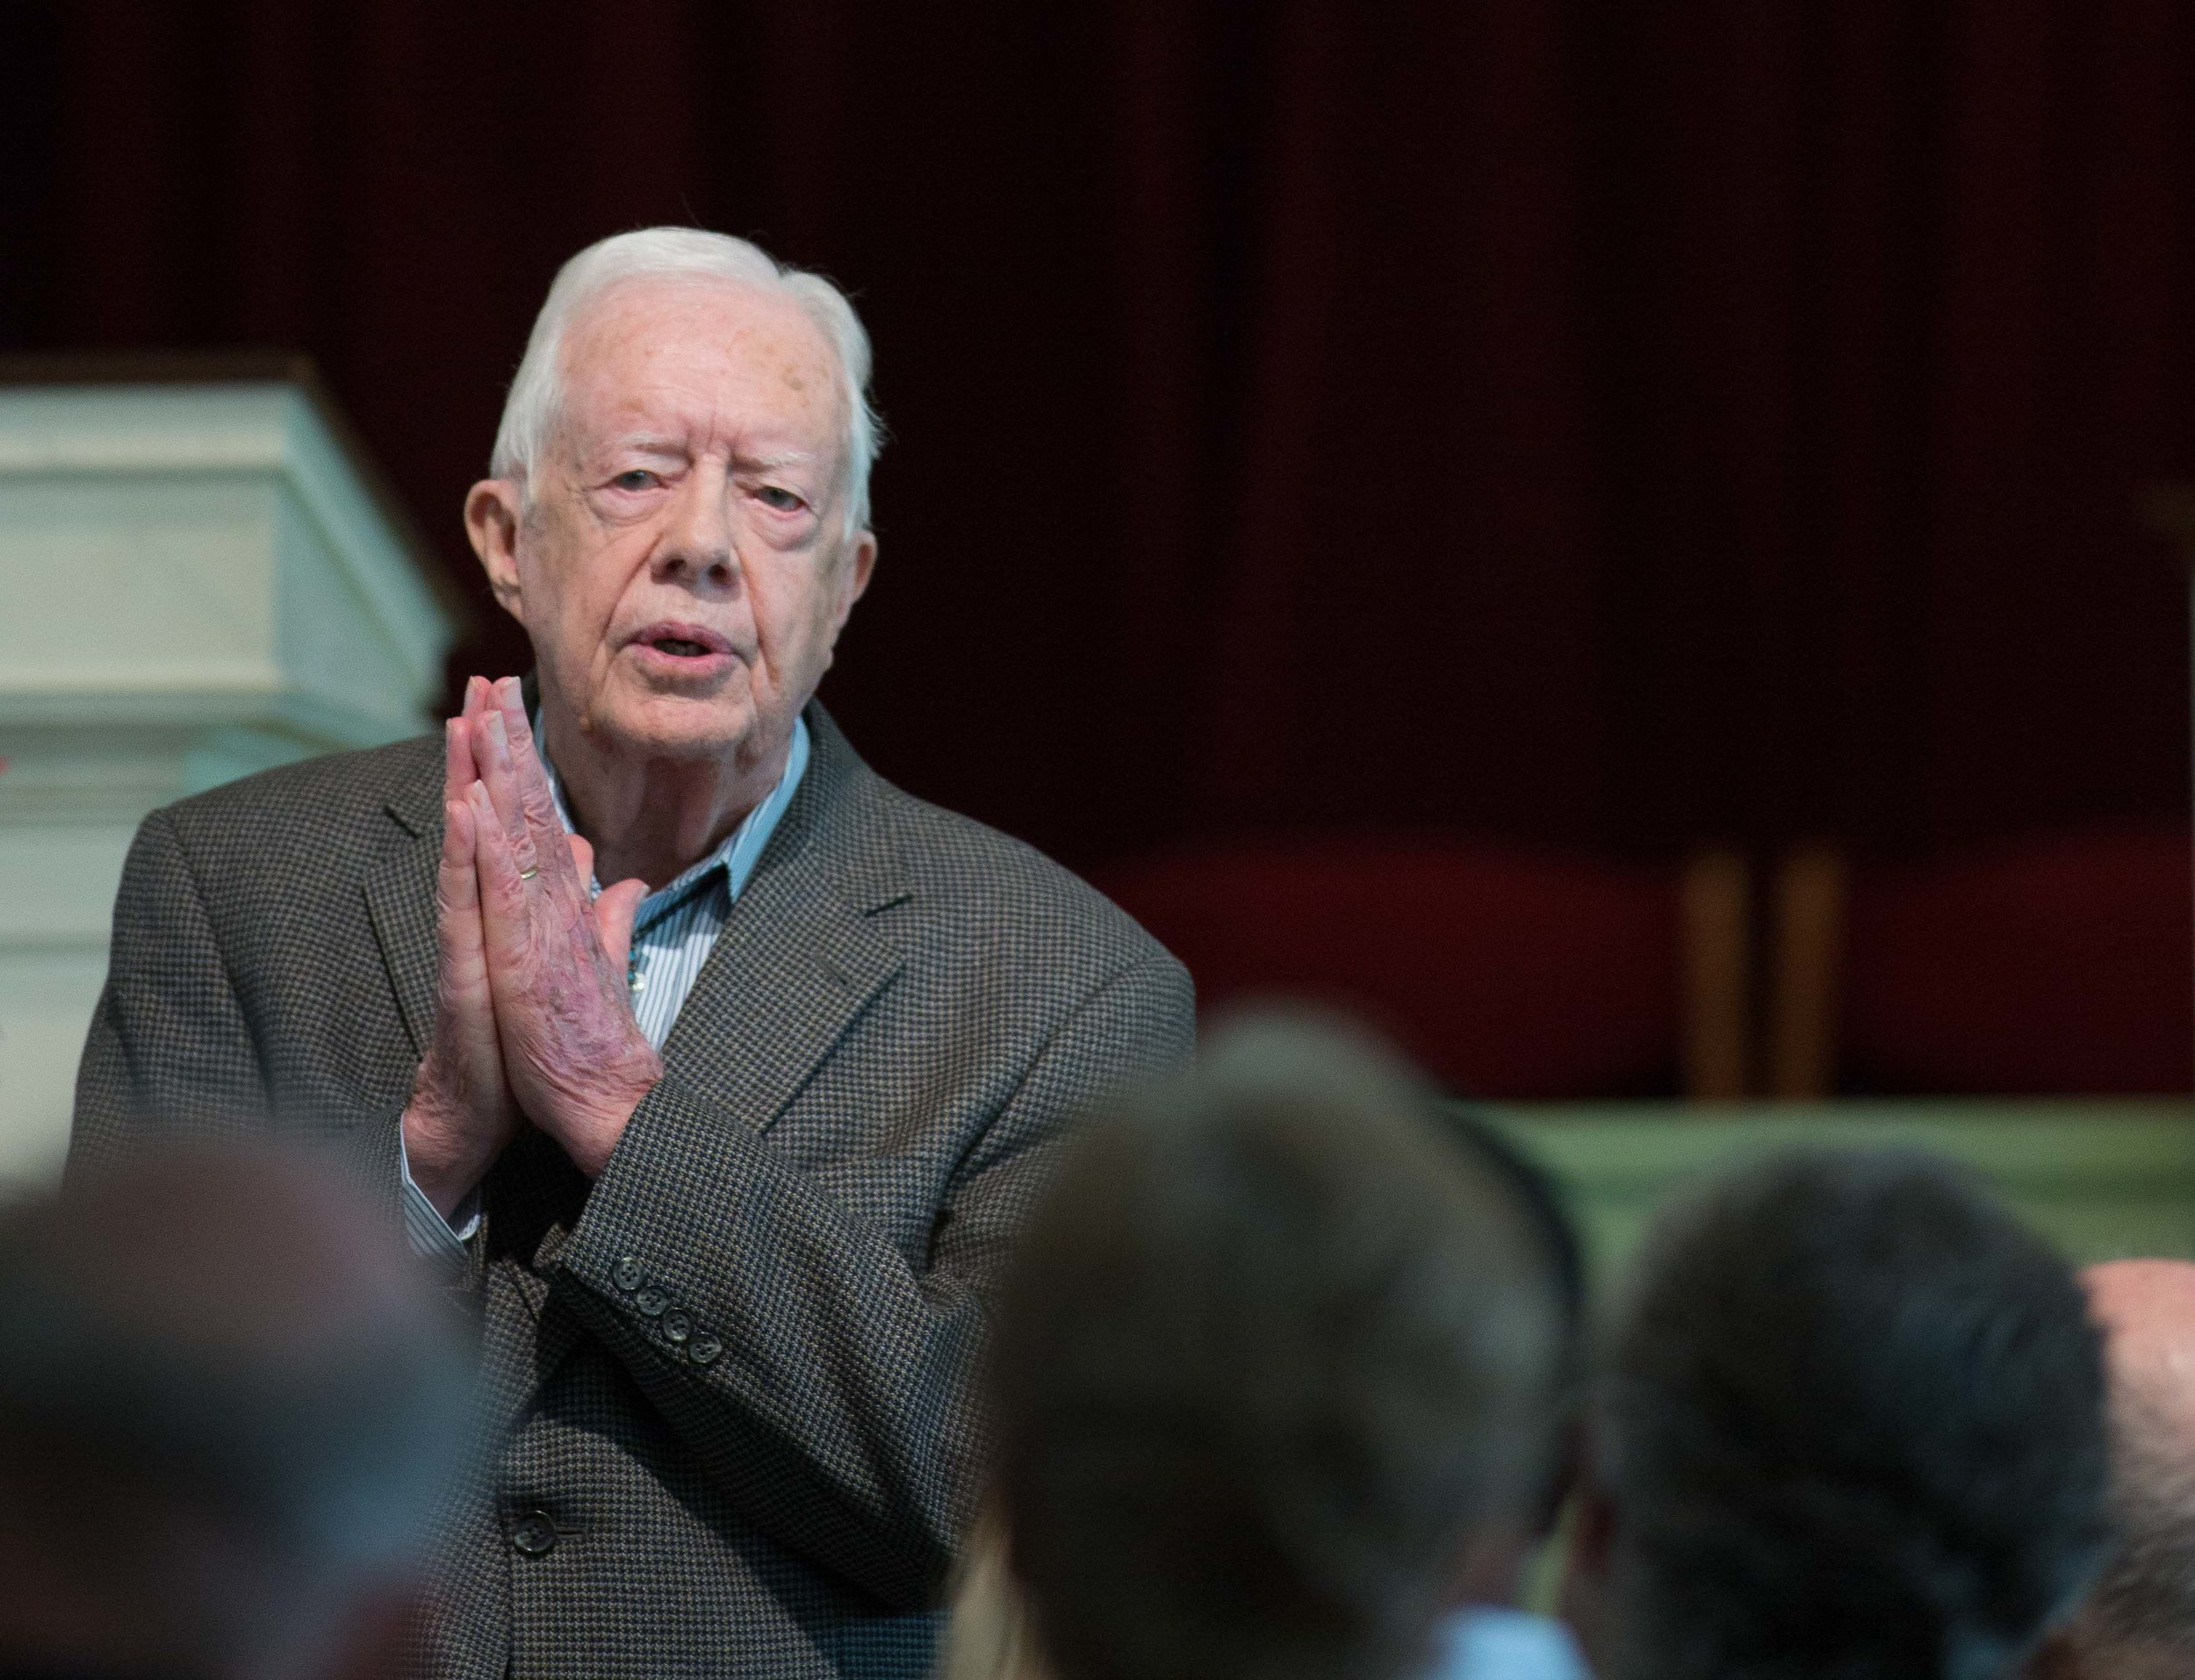 """Former President Jimmy Carter teaches during Sunday School class at Maranatha Baptist Church in his hometown, Sunday, Dec. 13, 2015, in Plains, Ga. A recent MRI showing no cancer on Jimmy Carter's brain is """"very positive"""" news for the former president but will not end his medical treatment, doctors said. Carter, 91, announced Dec. 6 that doctors found no evidence of the four lesions discovered on his brain this summer and no signs of new cancer growth. (AP Photo/Branden Camp)"""